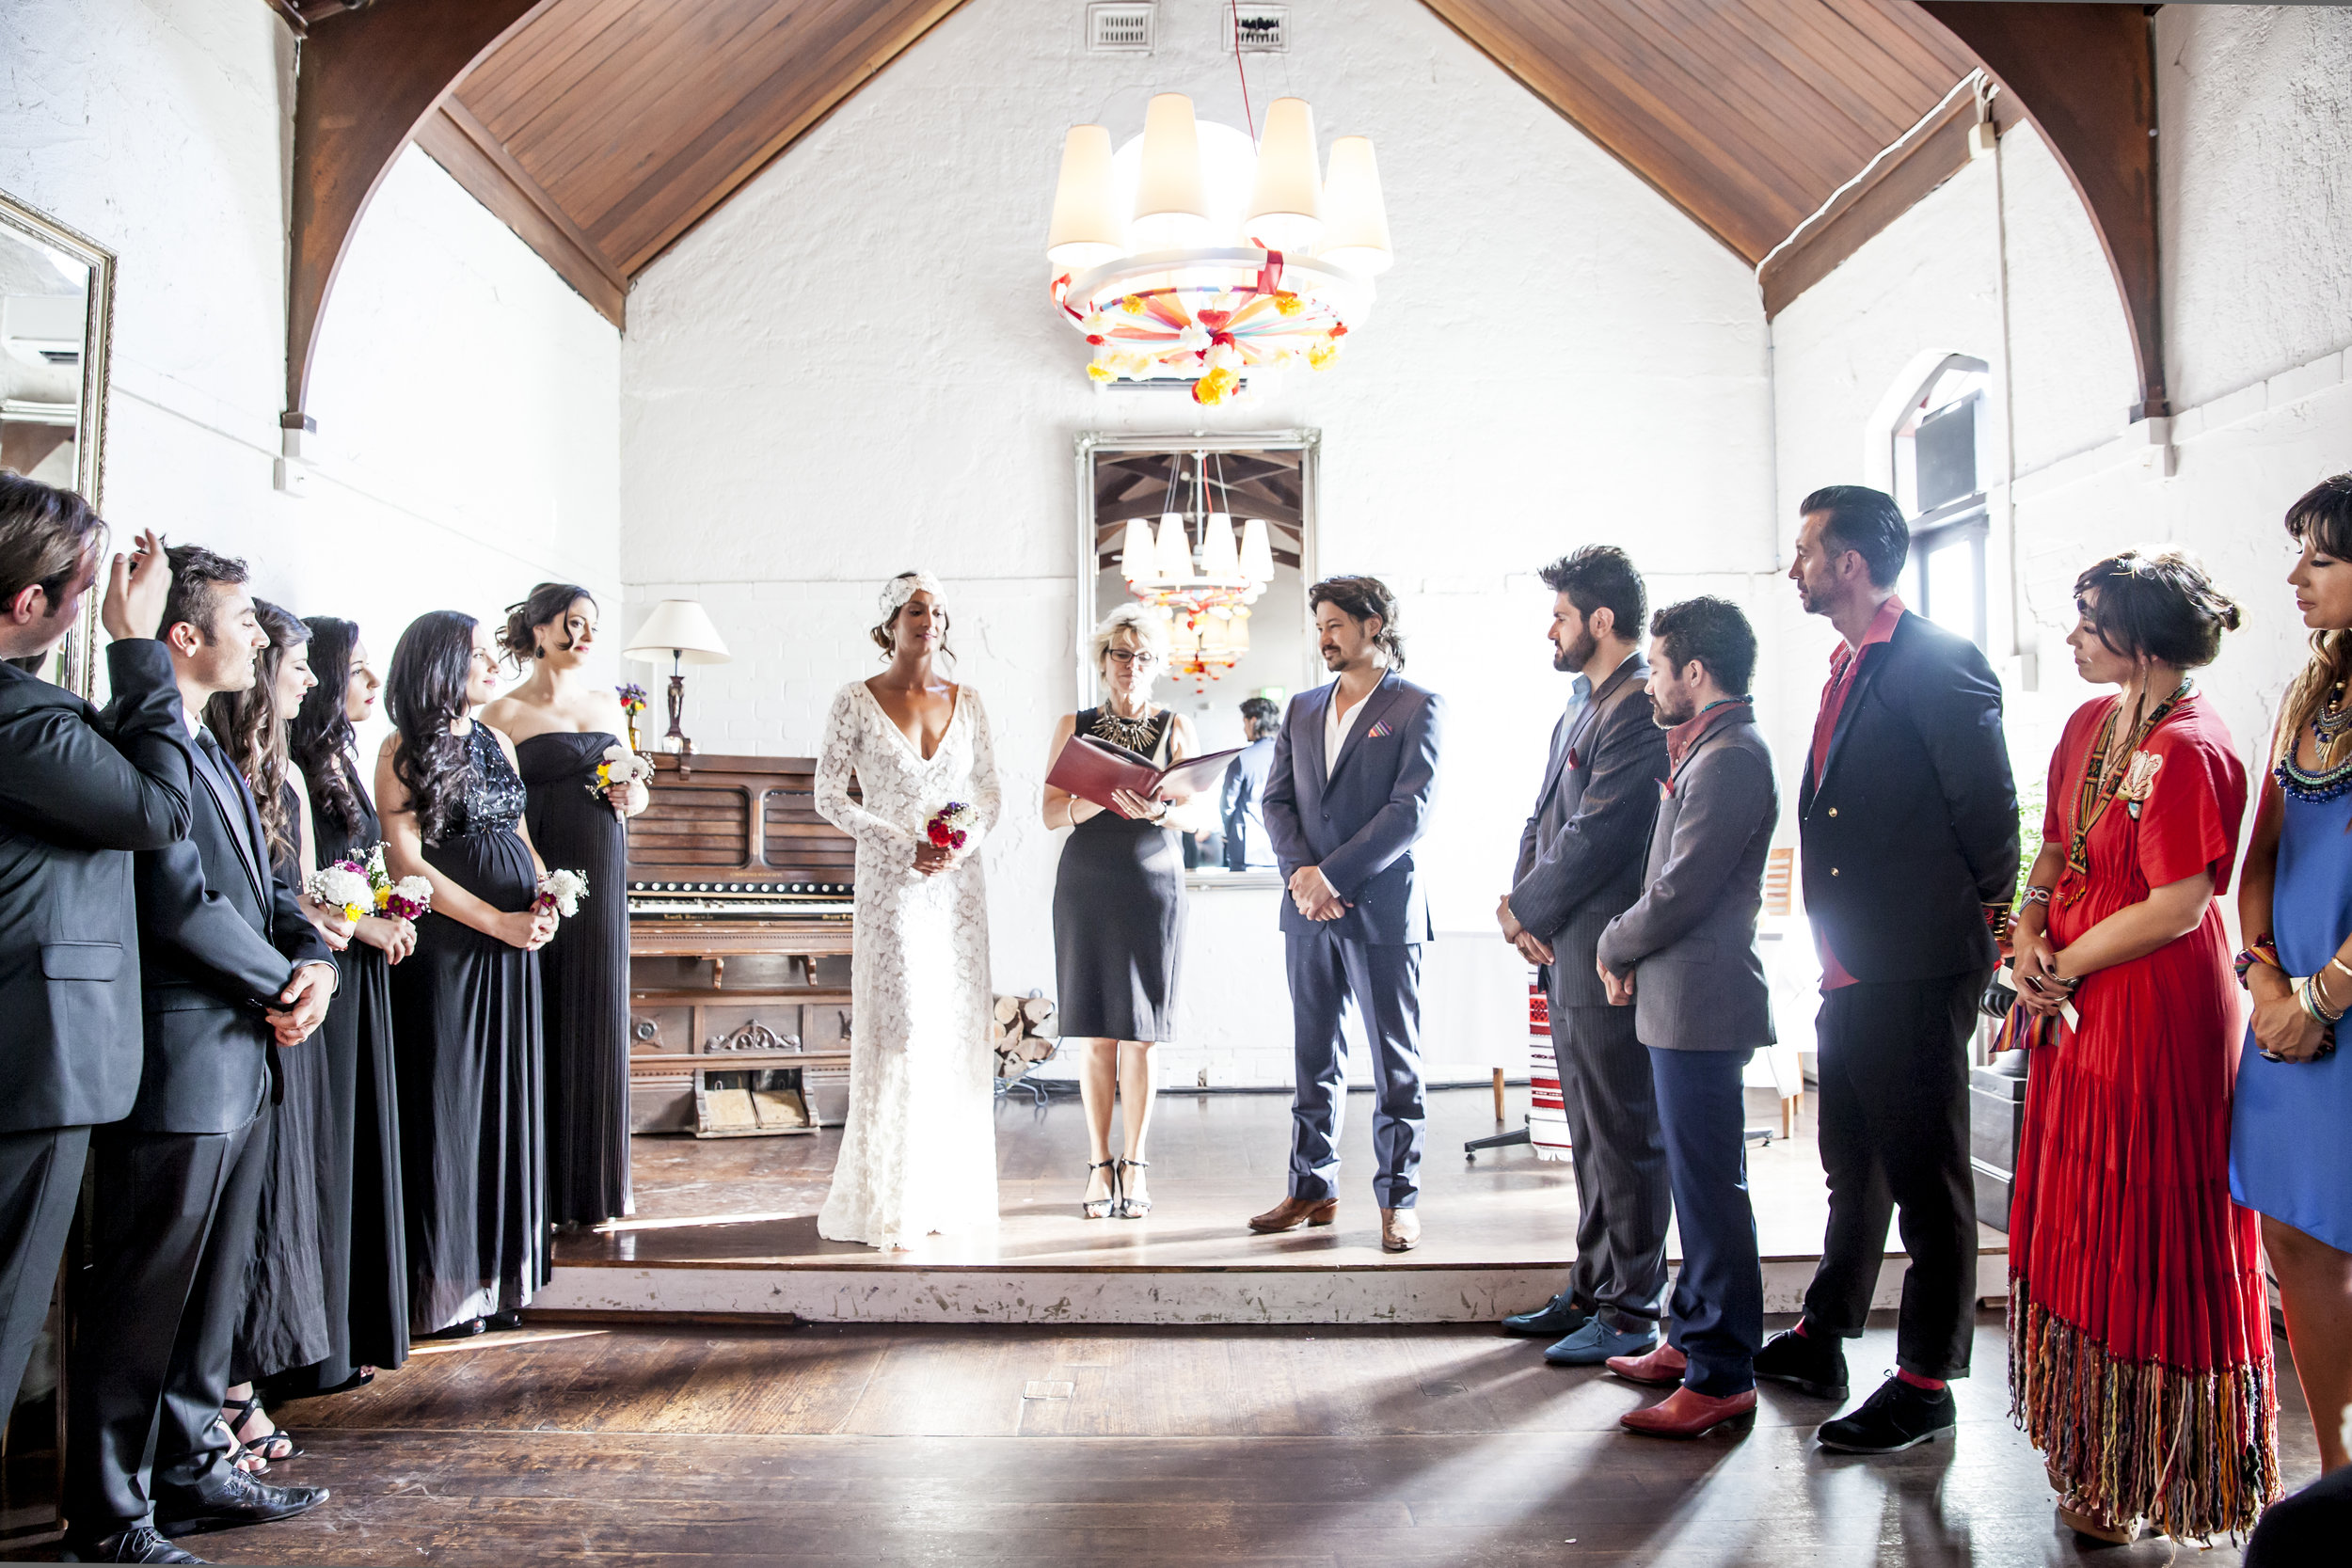 wedding photography melbourne prices